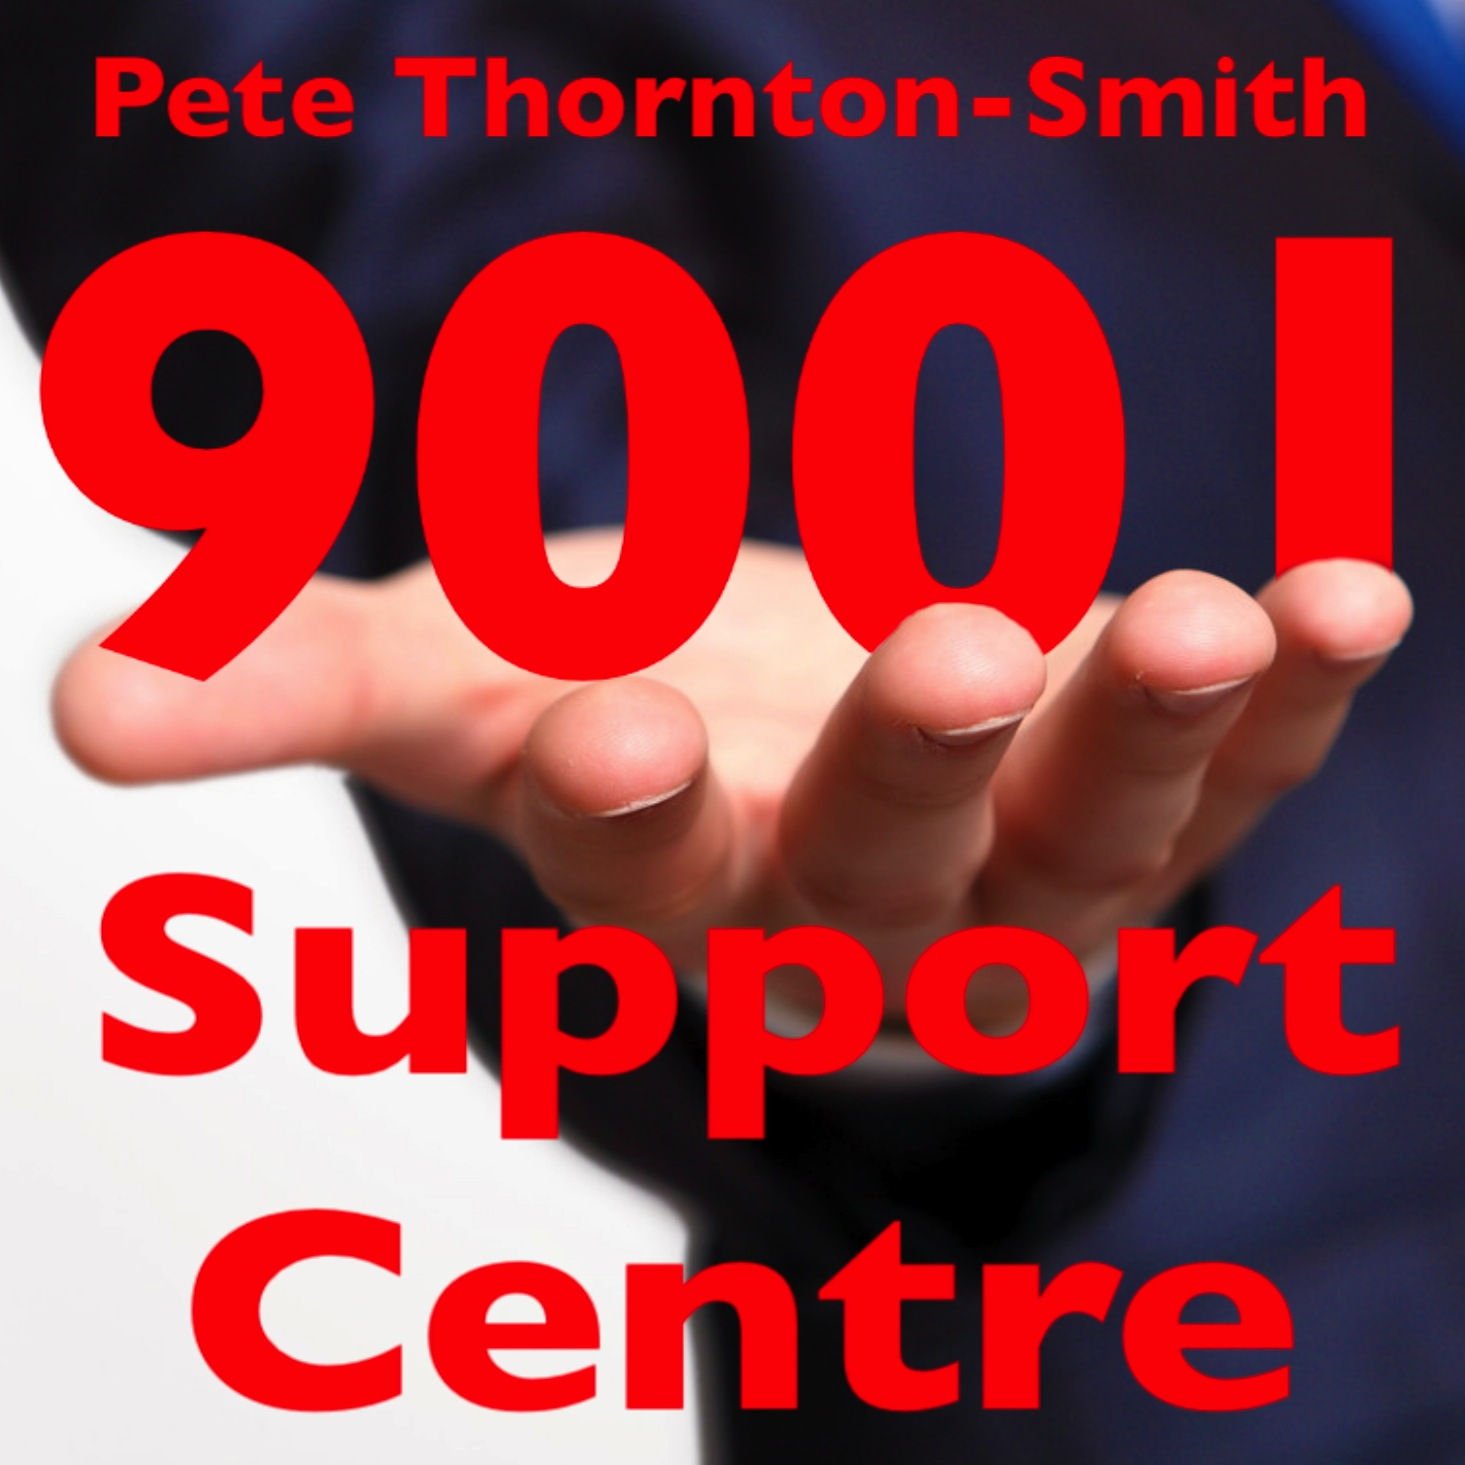 9001 Support Centre